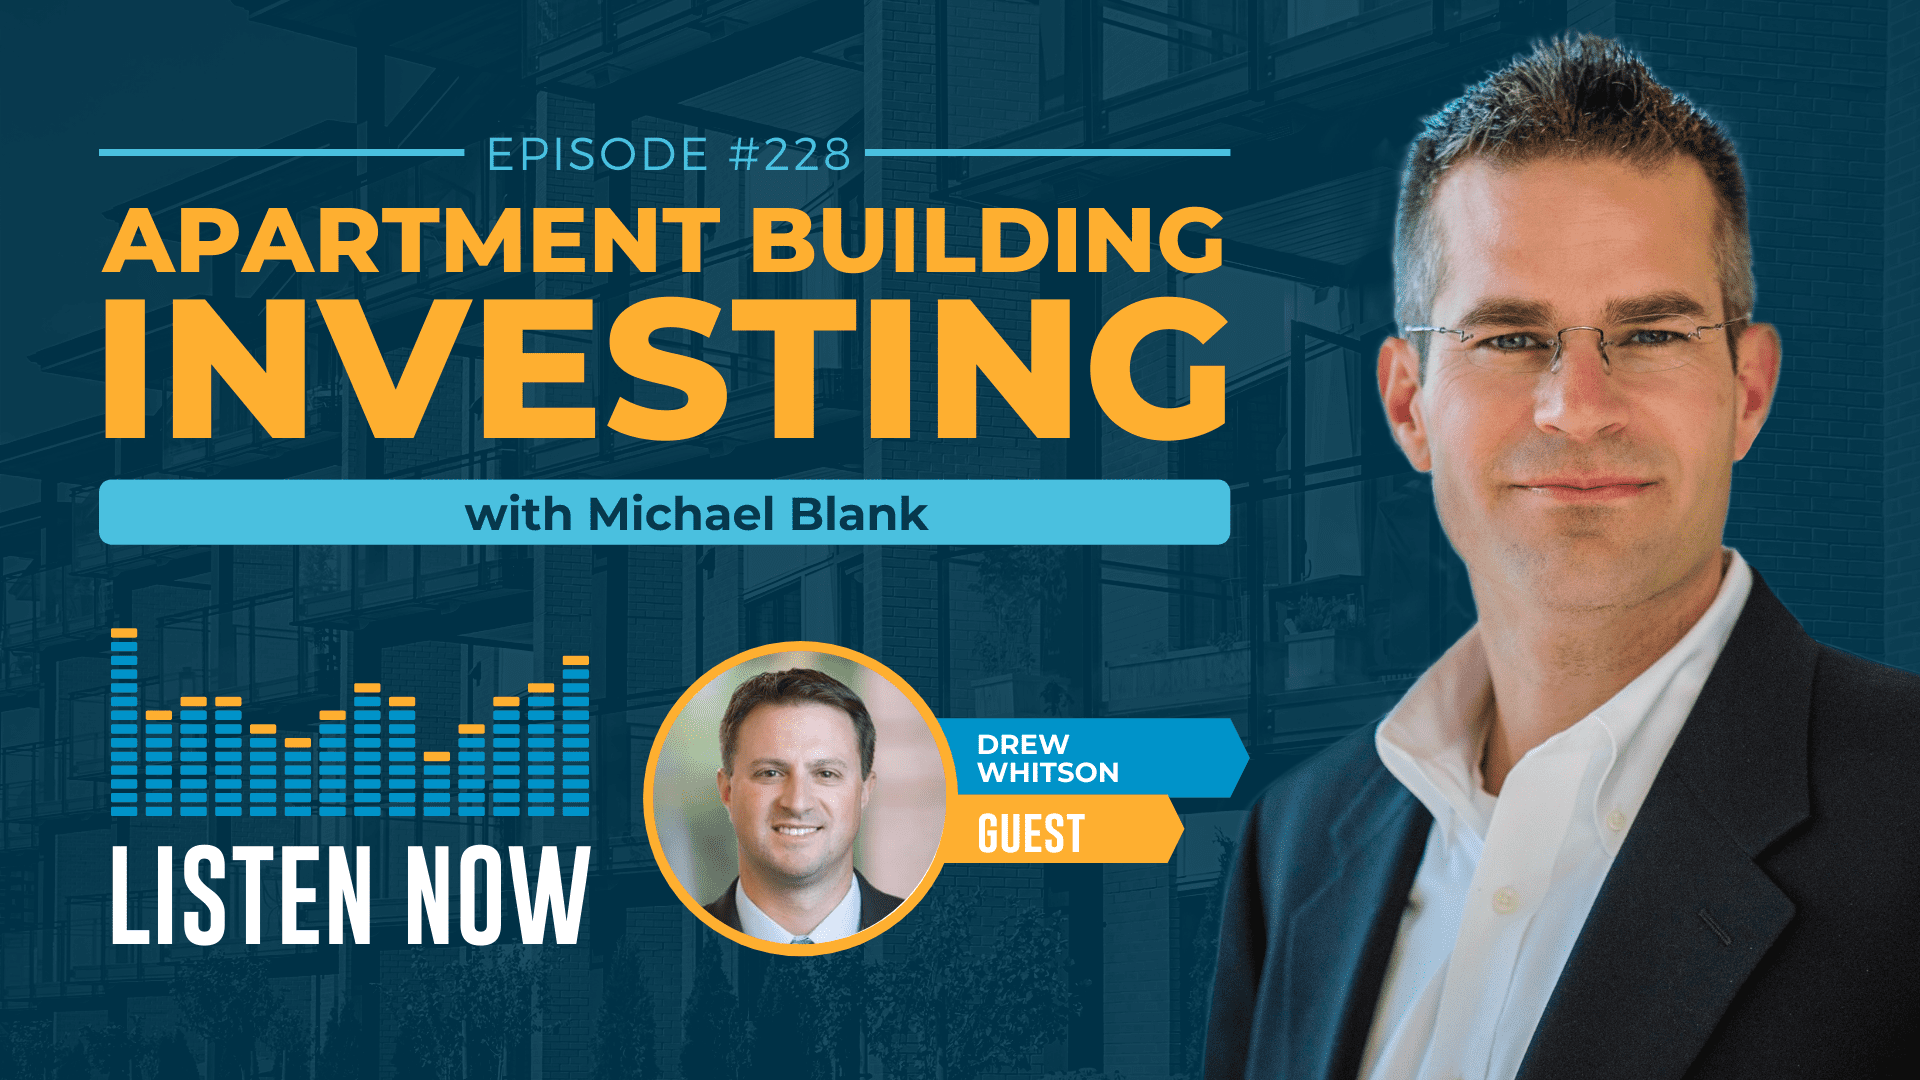 MB 228: What's Working Now to Get Deals Done – With Drew Whitson & the Michael Blank Mentoring Team